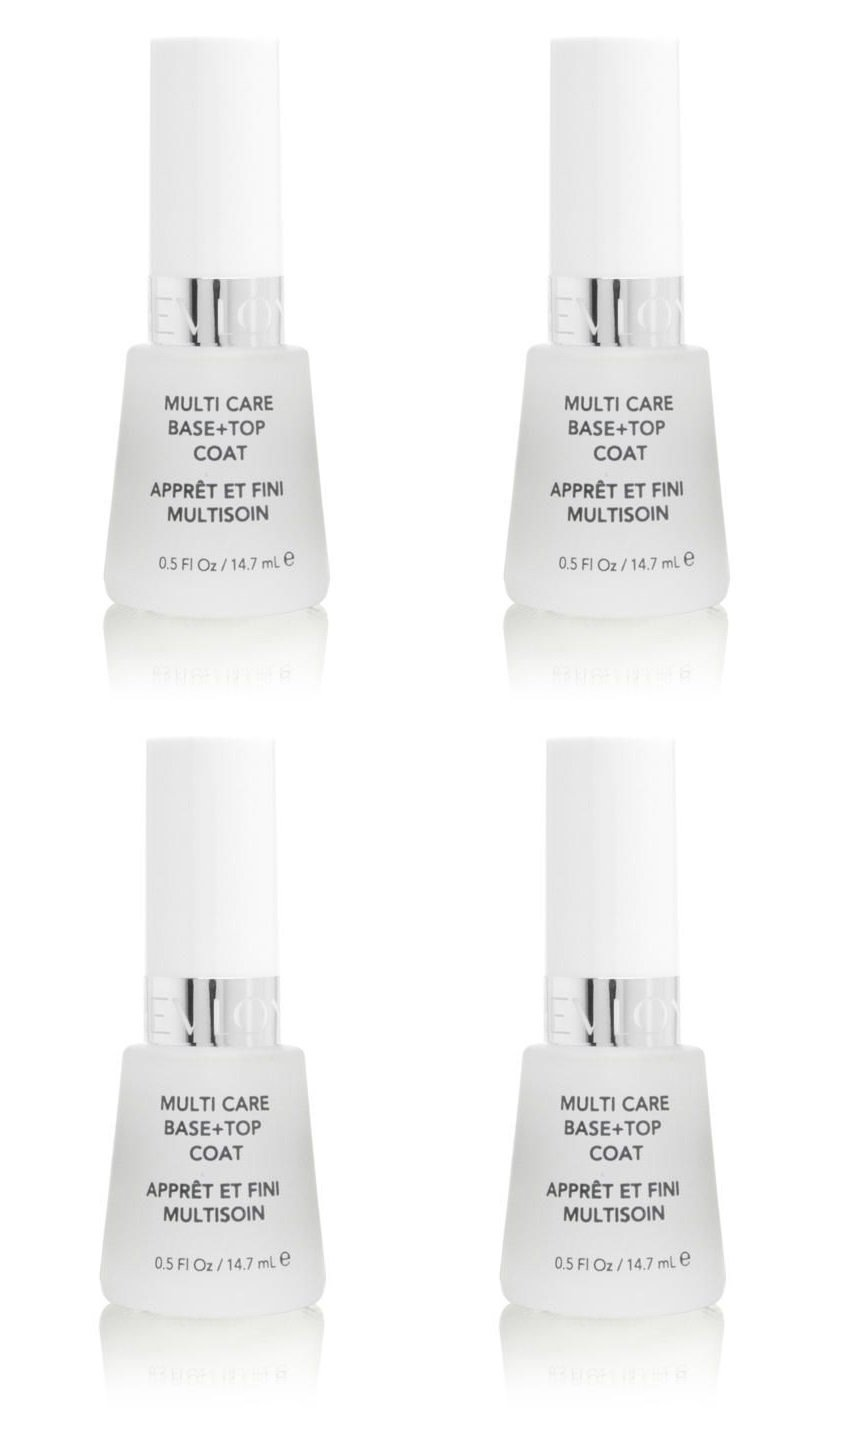 Revlon Nail Polish Multi Care Base+top Coat 0.5 Oz (4 Pack) + FREE Makeup Blender